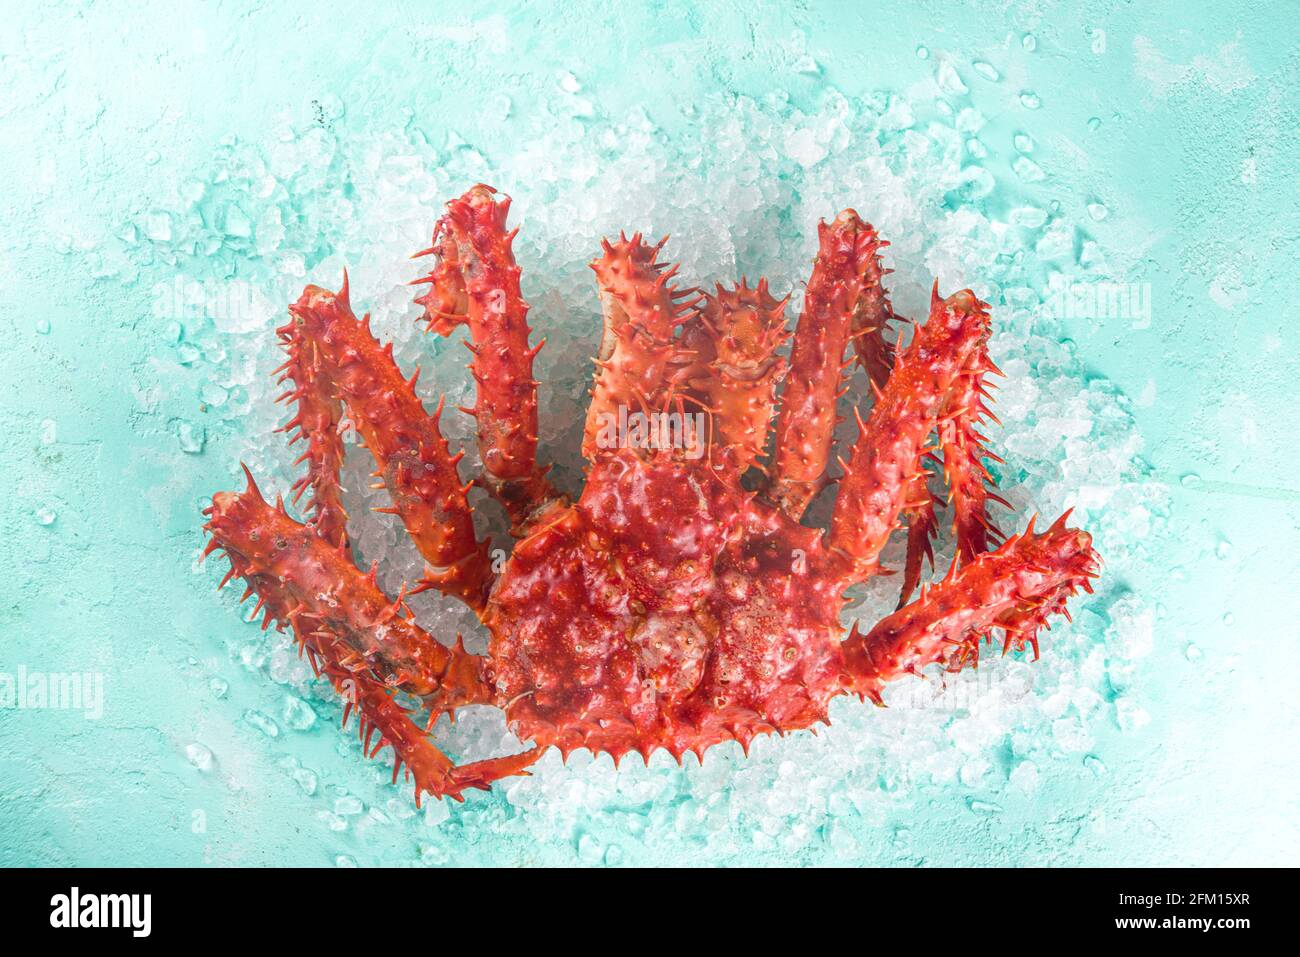 Set of various fresh raw seafood - octopus, crab, squid, shrimp prawn, oyster, mussels, salmon tuna dorada fish with spices of herbs lemon, light blue Stock Photo